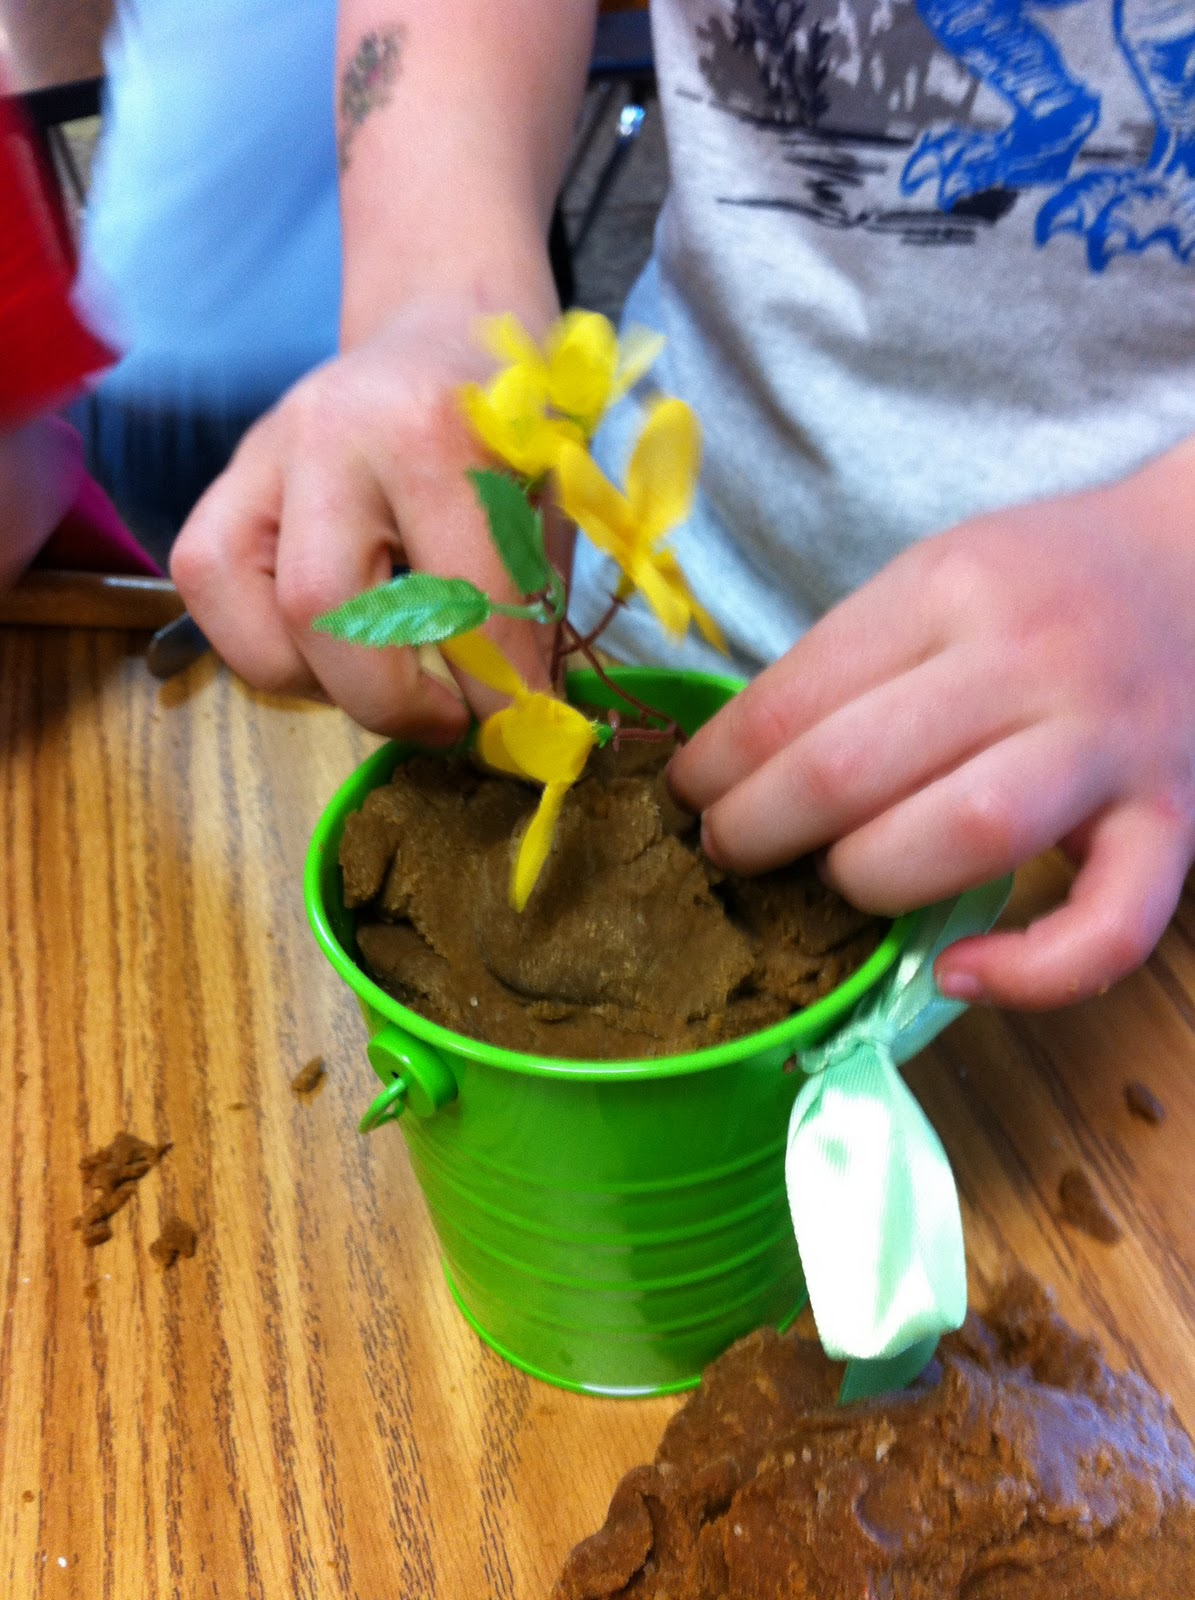 How To Make Brown Playdough With Food Coloring